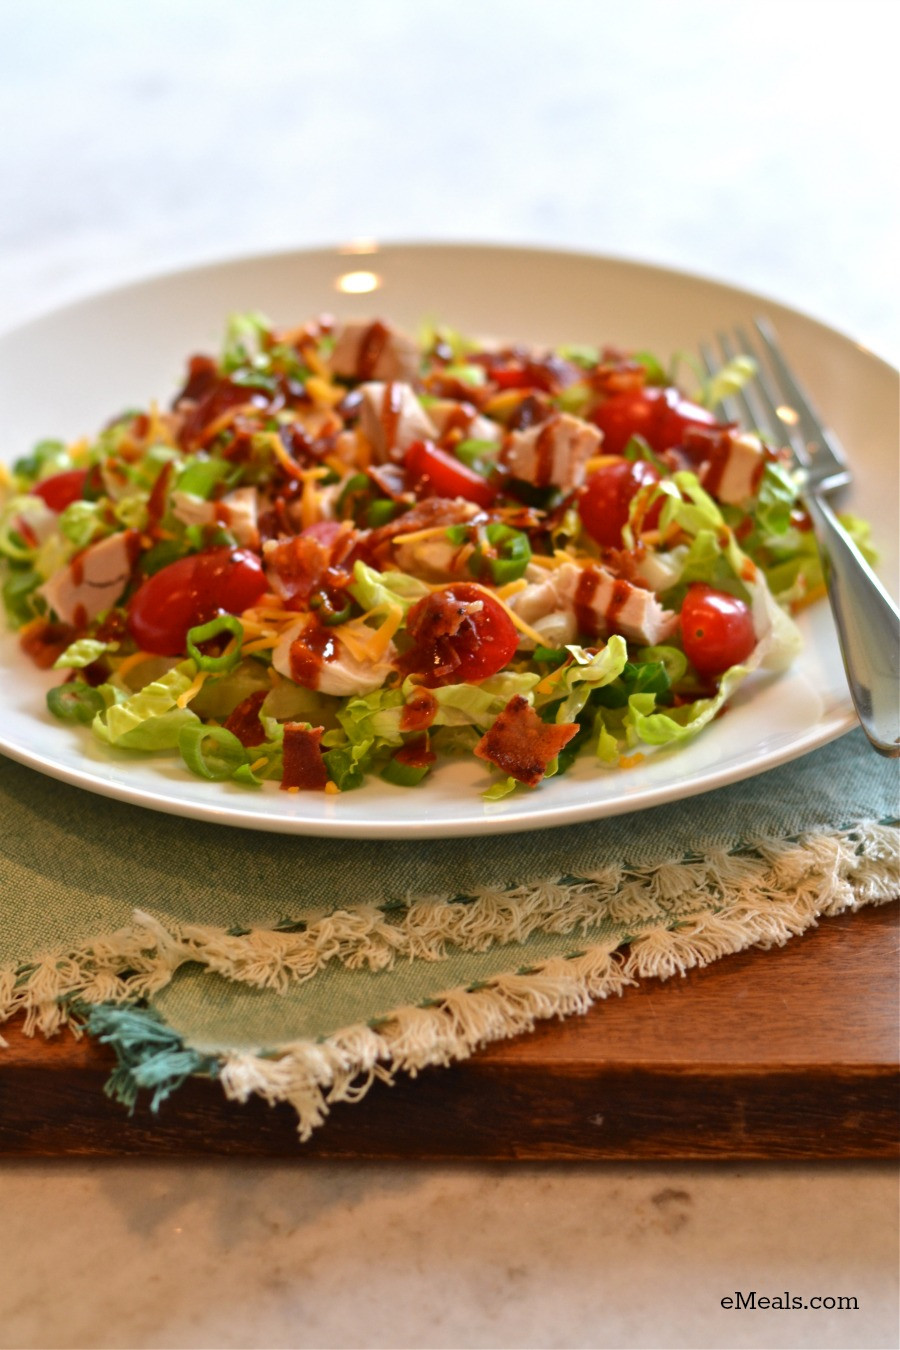 Quick Low Calorie Dinners  Quick and Easy Low Calorie Warm Barbecue Chicken Salad